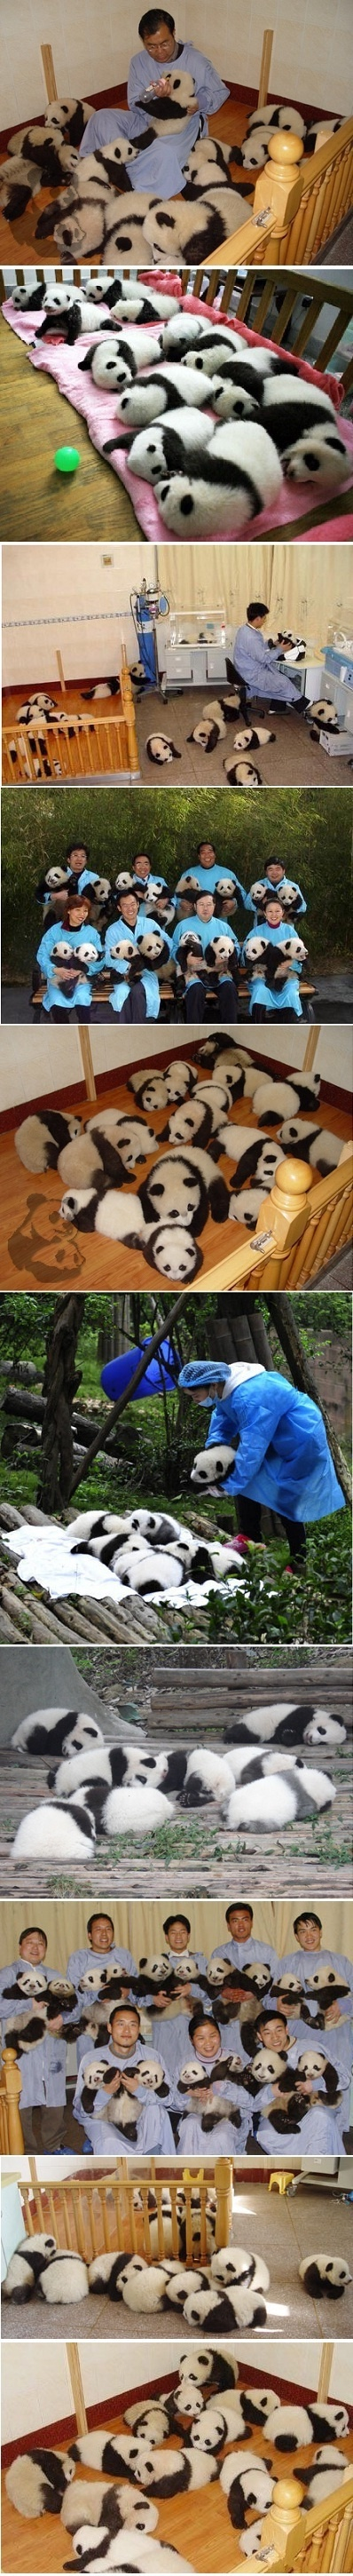 baby panda~ they're so fluffy i'm gonna die!!!